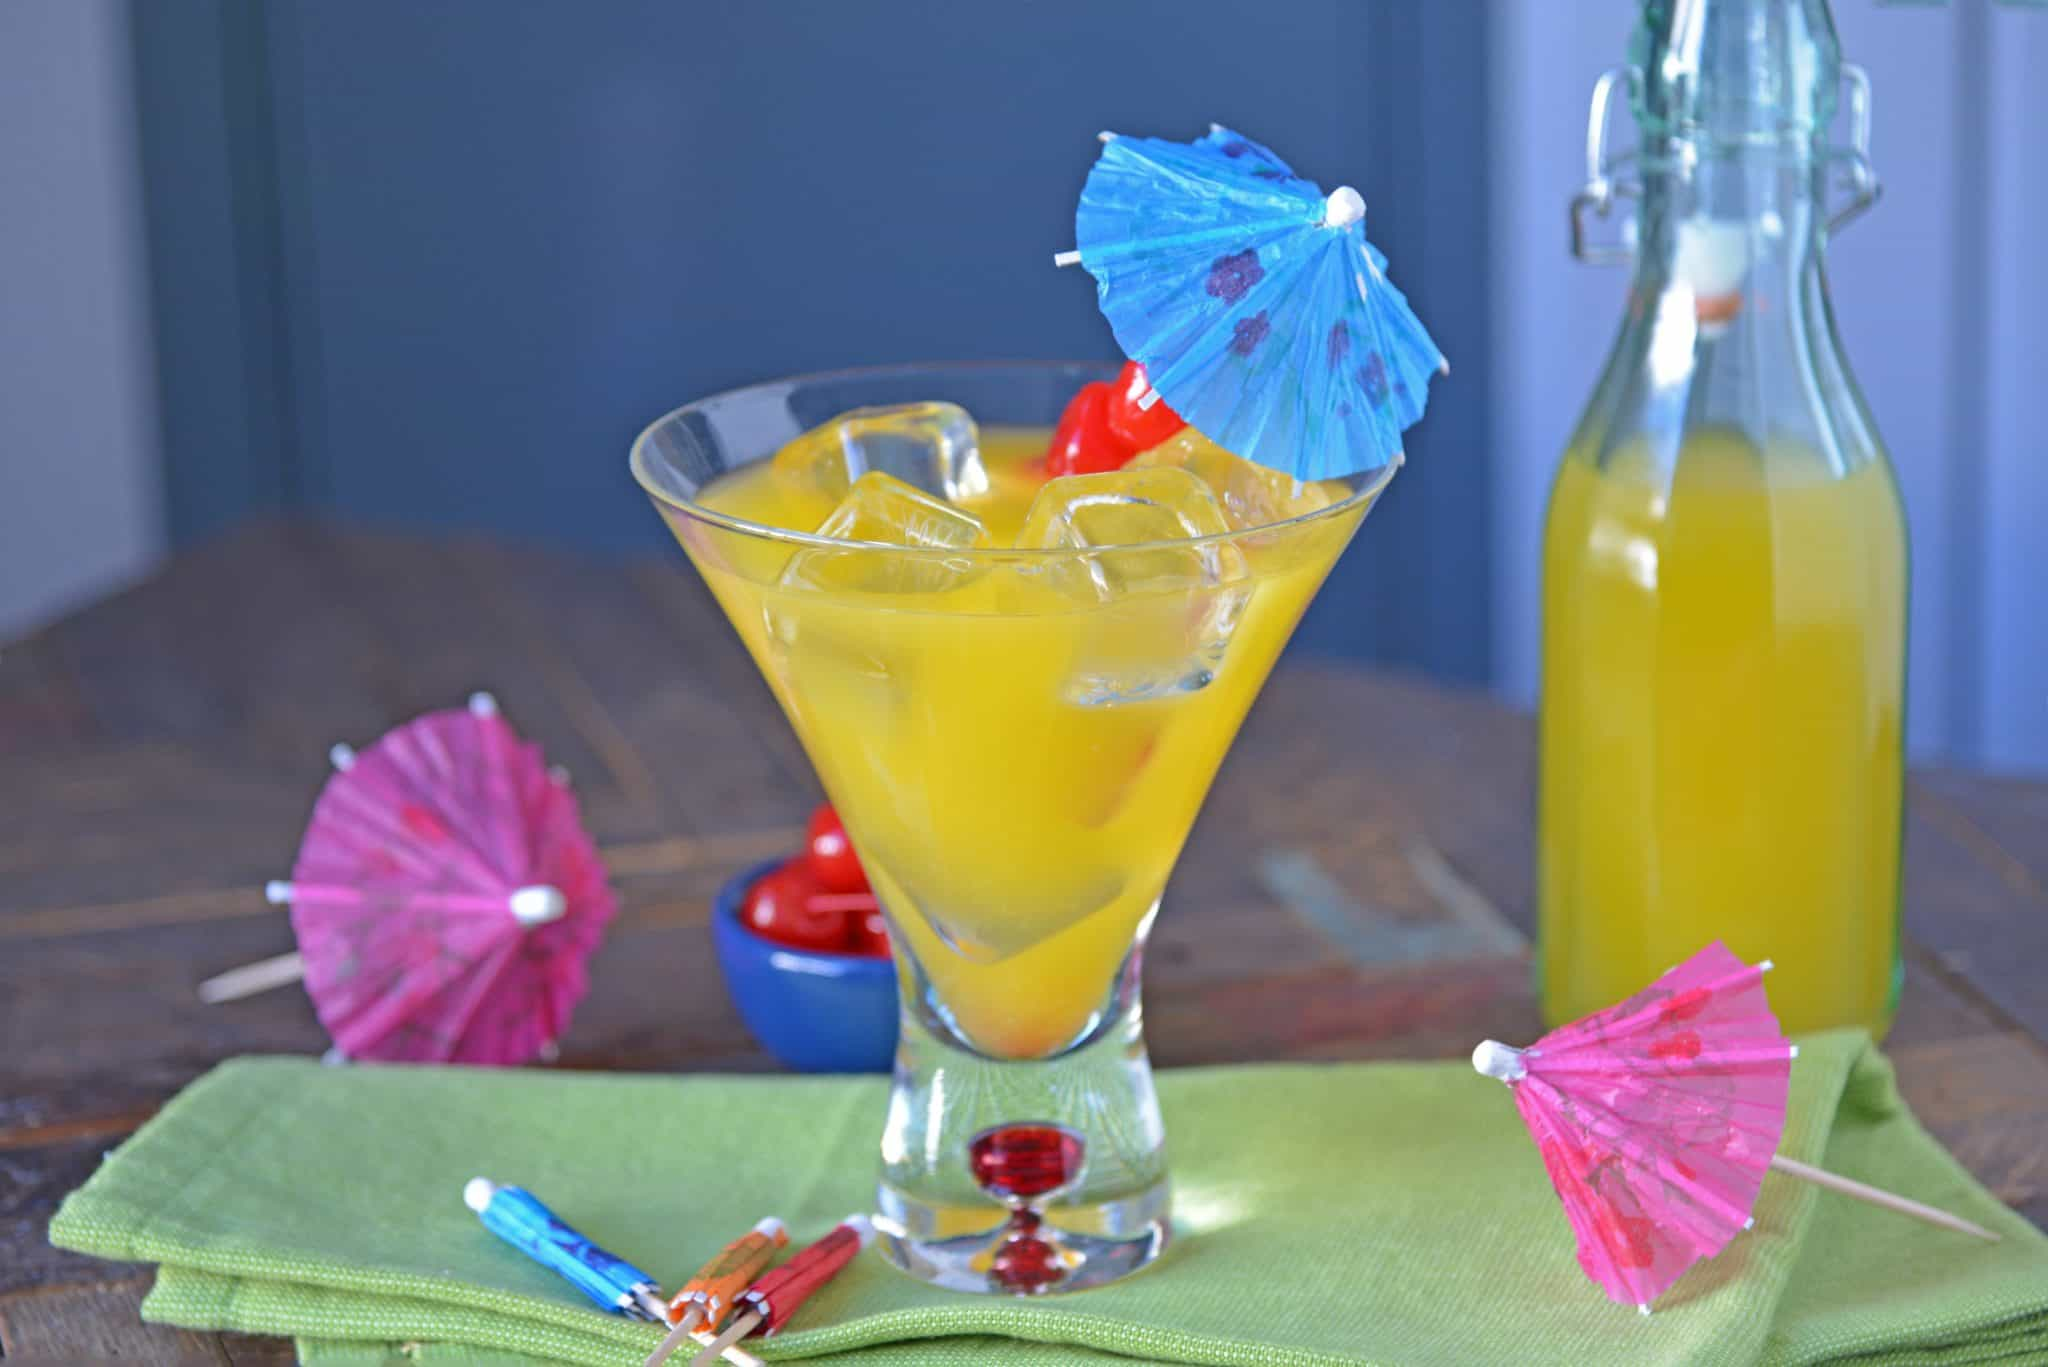 A Mango Sunrise is a deliciously refreshing tequila cocktail that is perfect for sipping any time of day! This Mango Sunrise recipe makes one delicious drink! #tequilacocktails #cocktailsthatusetequila #mangococktails